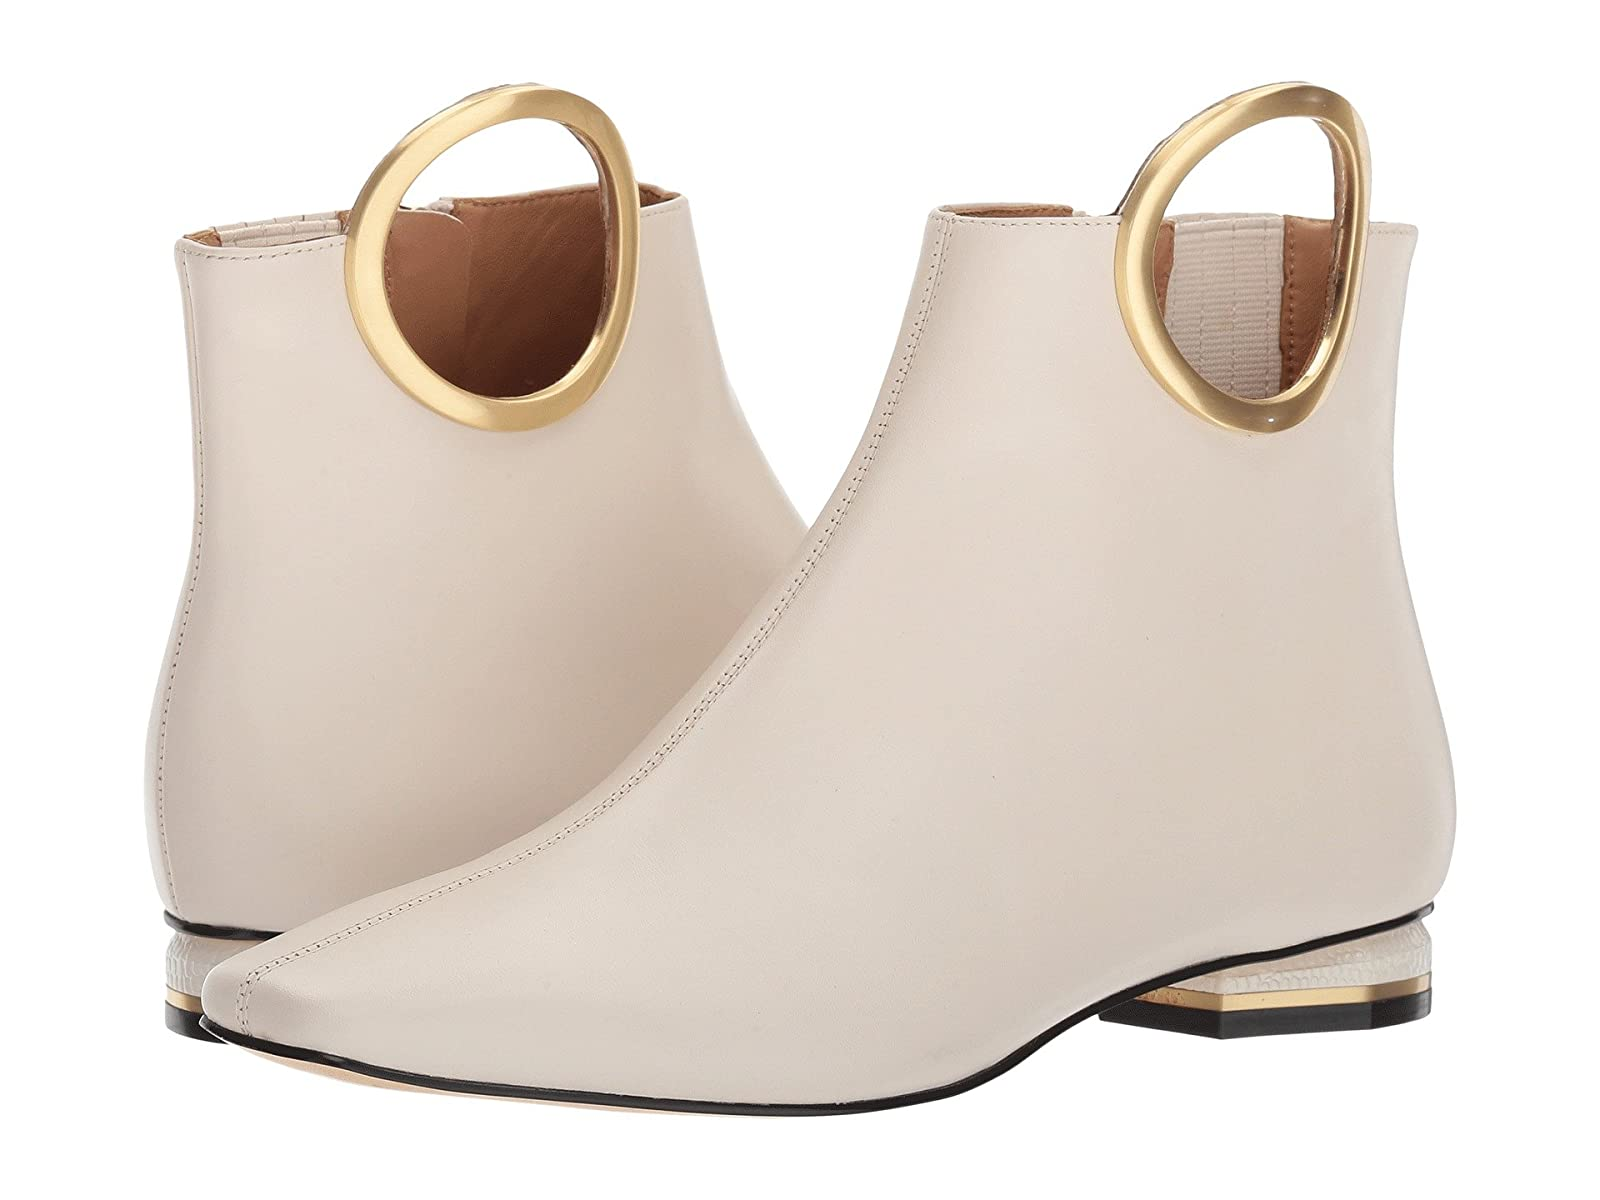 Calvin Klein BlondieCheap and distinctive eye-catching shoes